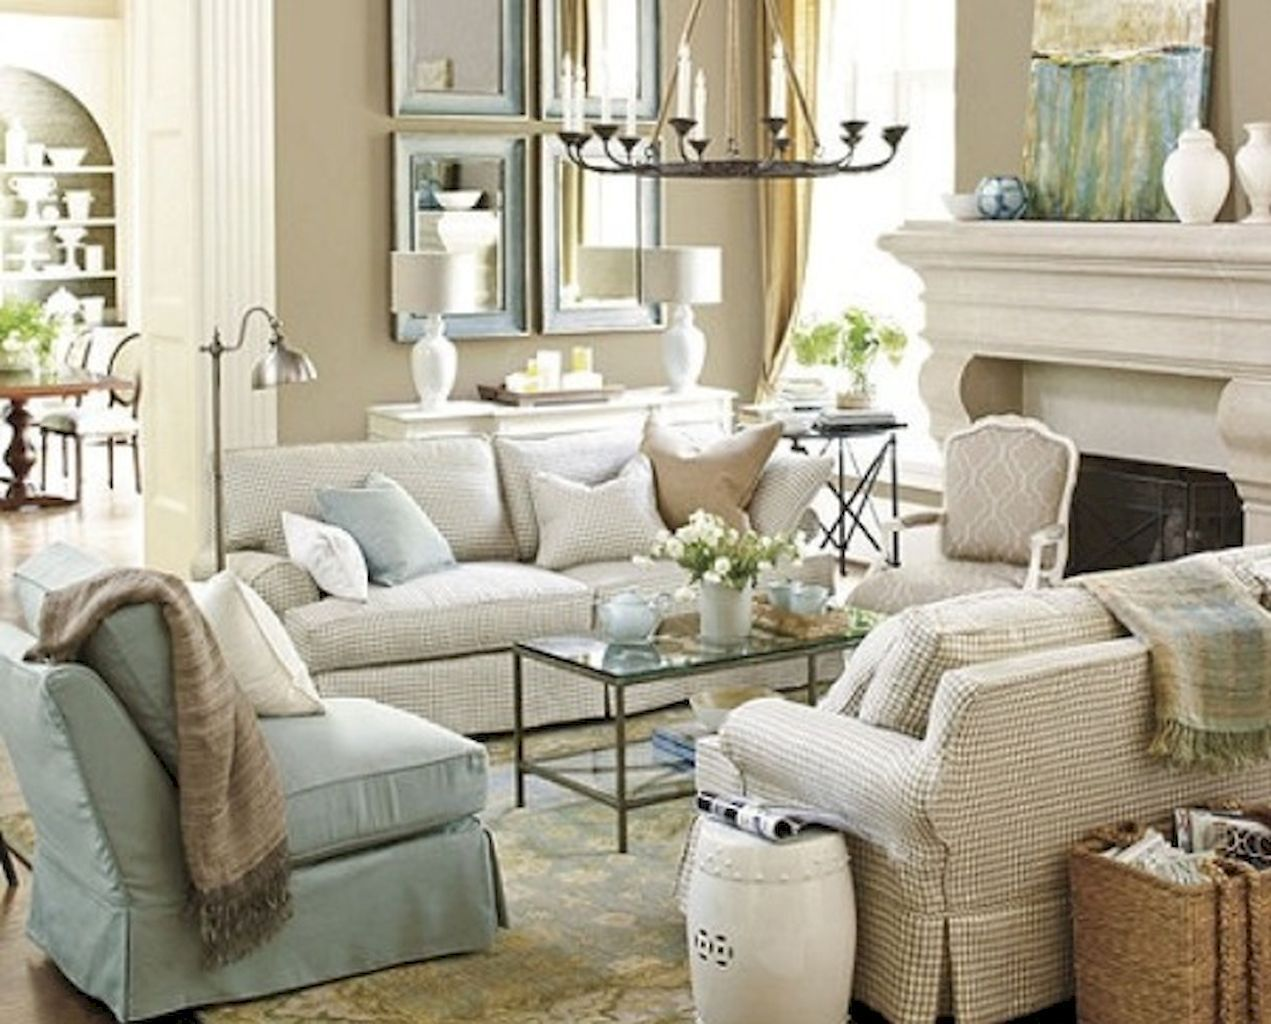 Beautiful French Country Living Room Decor Ideas 26 Country Living Room Design French Country Decorating Living Room French Country Living Room